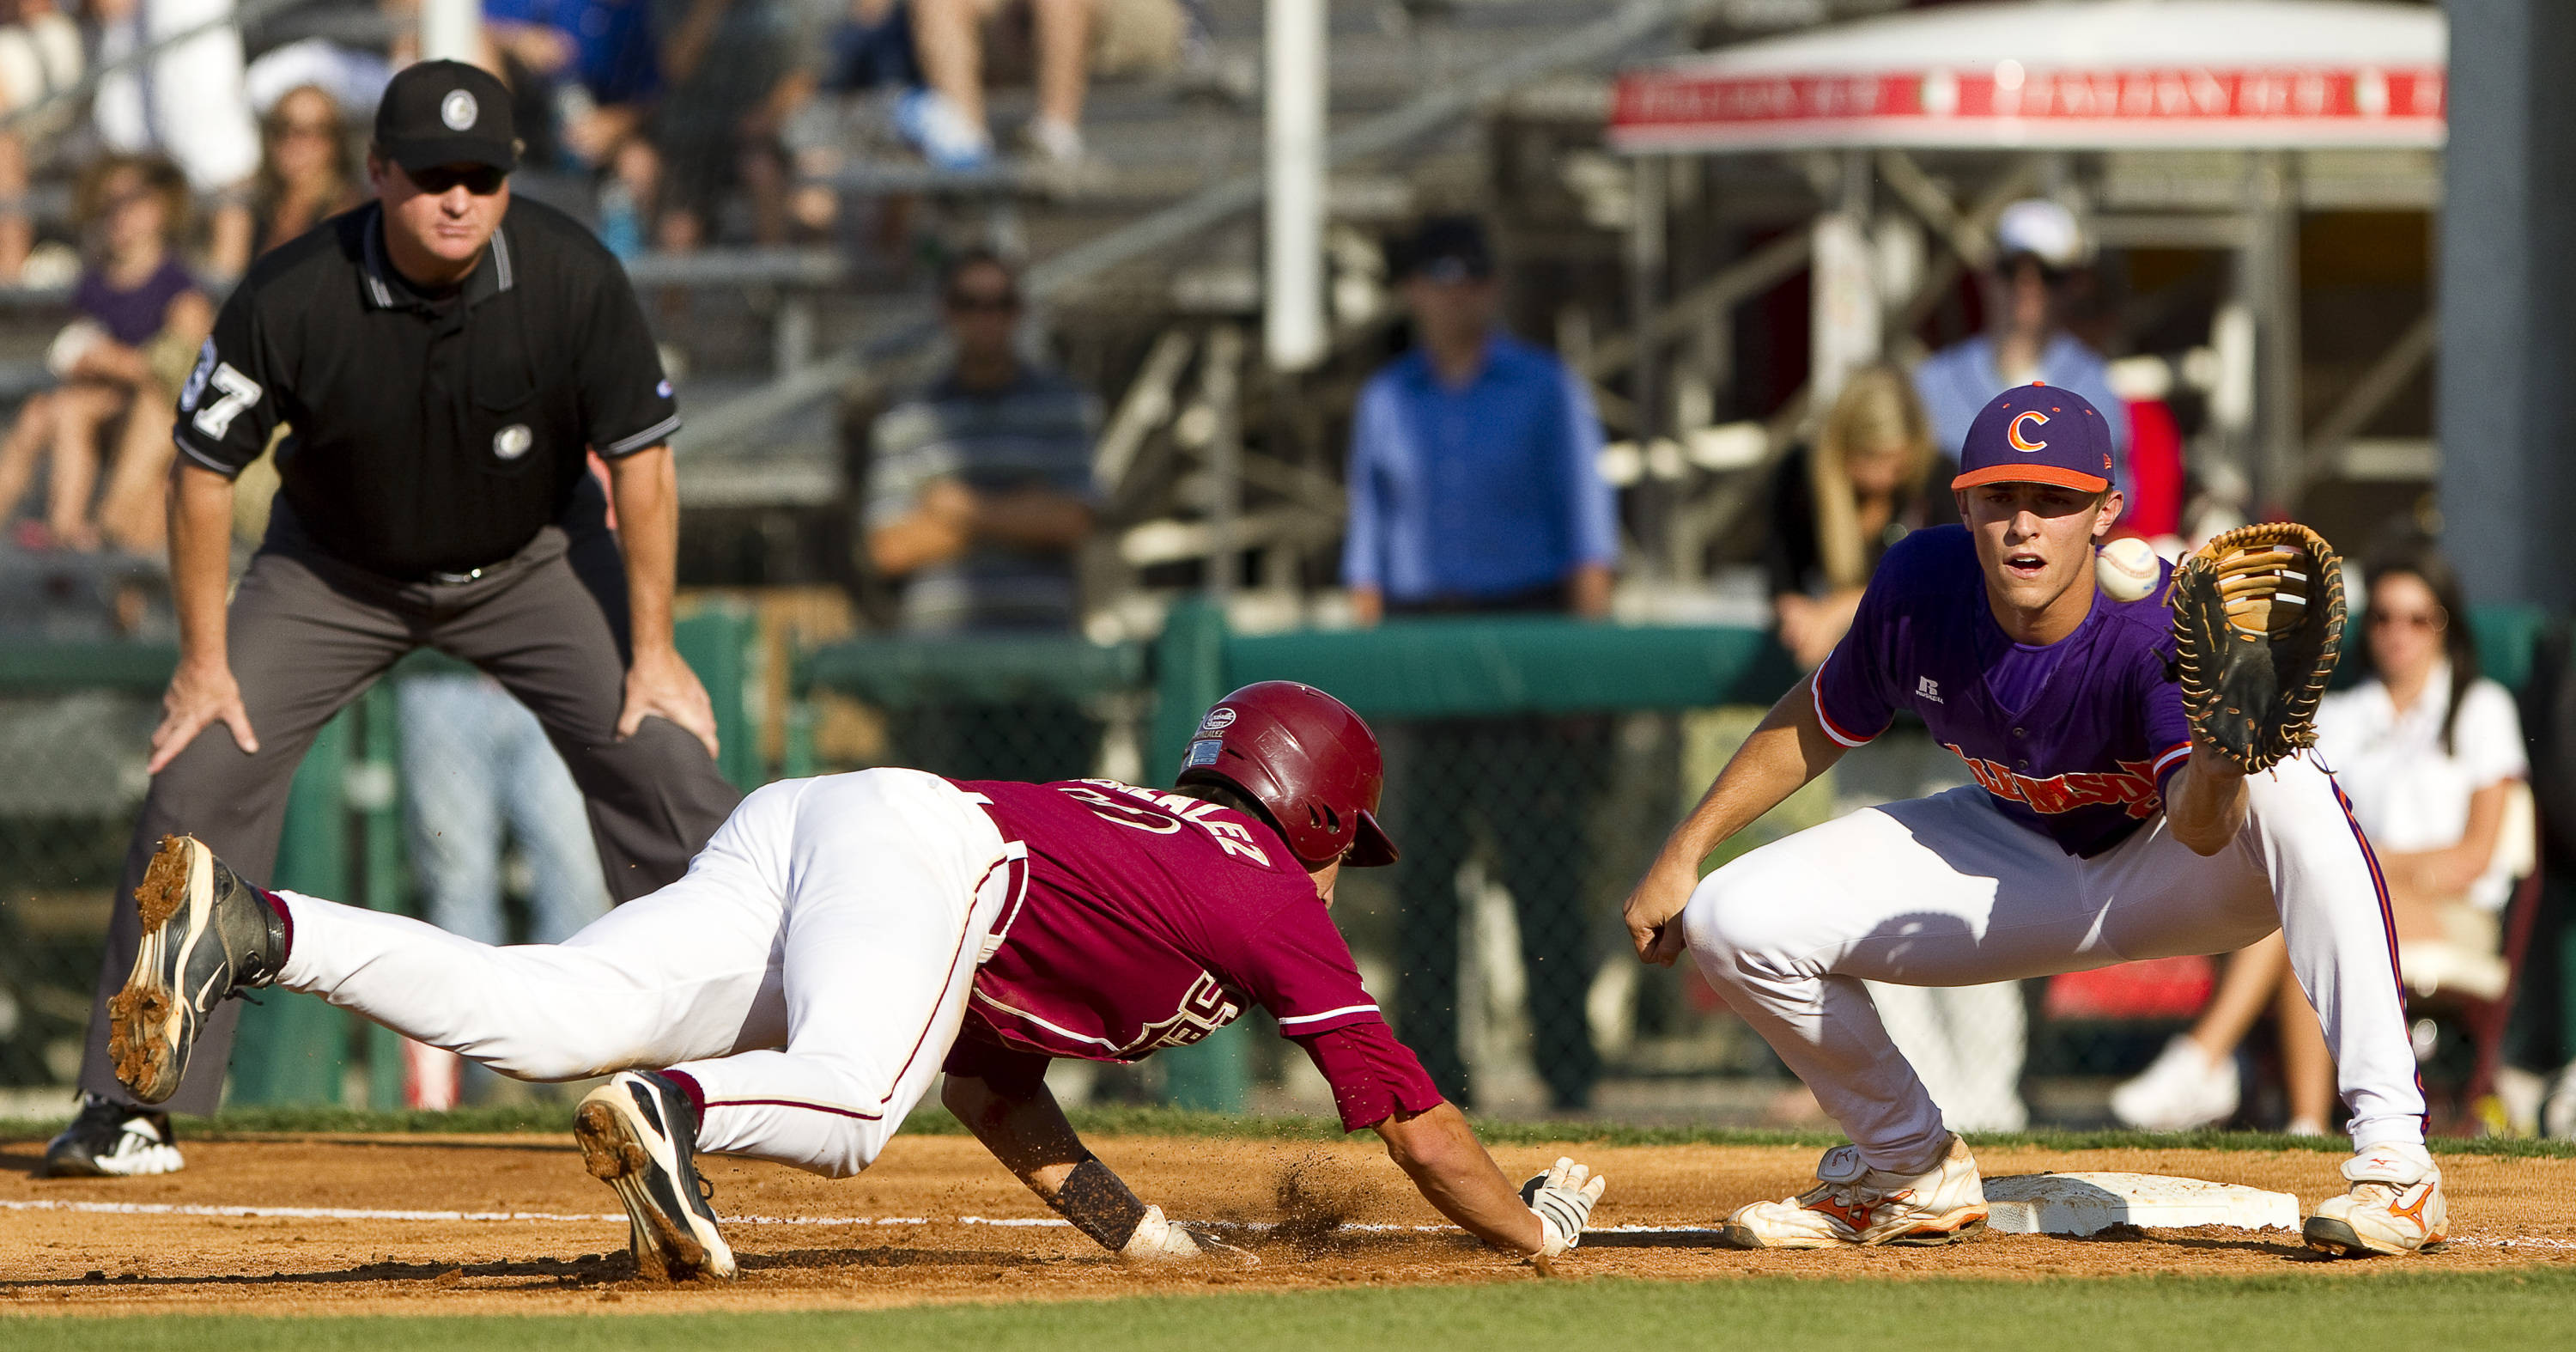 Justin Gonzalez (10) dives safely to first base.